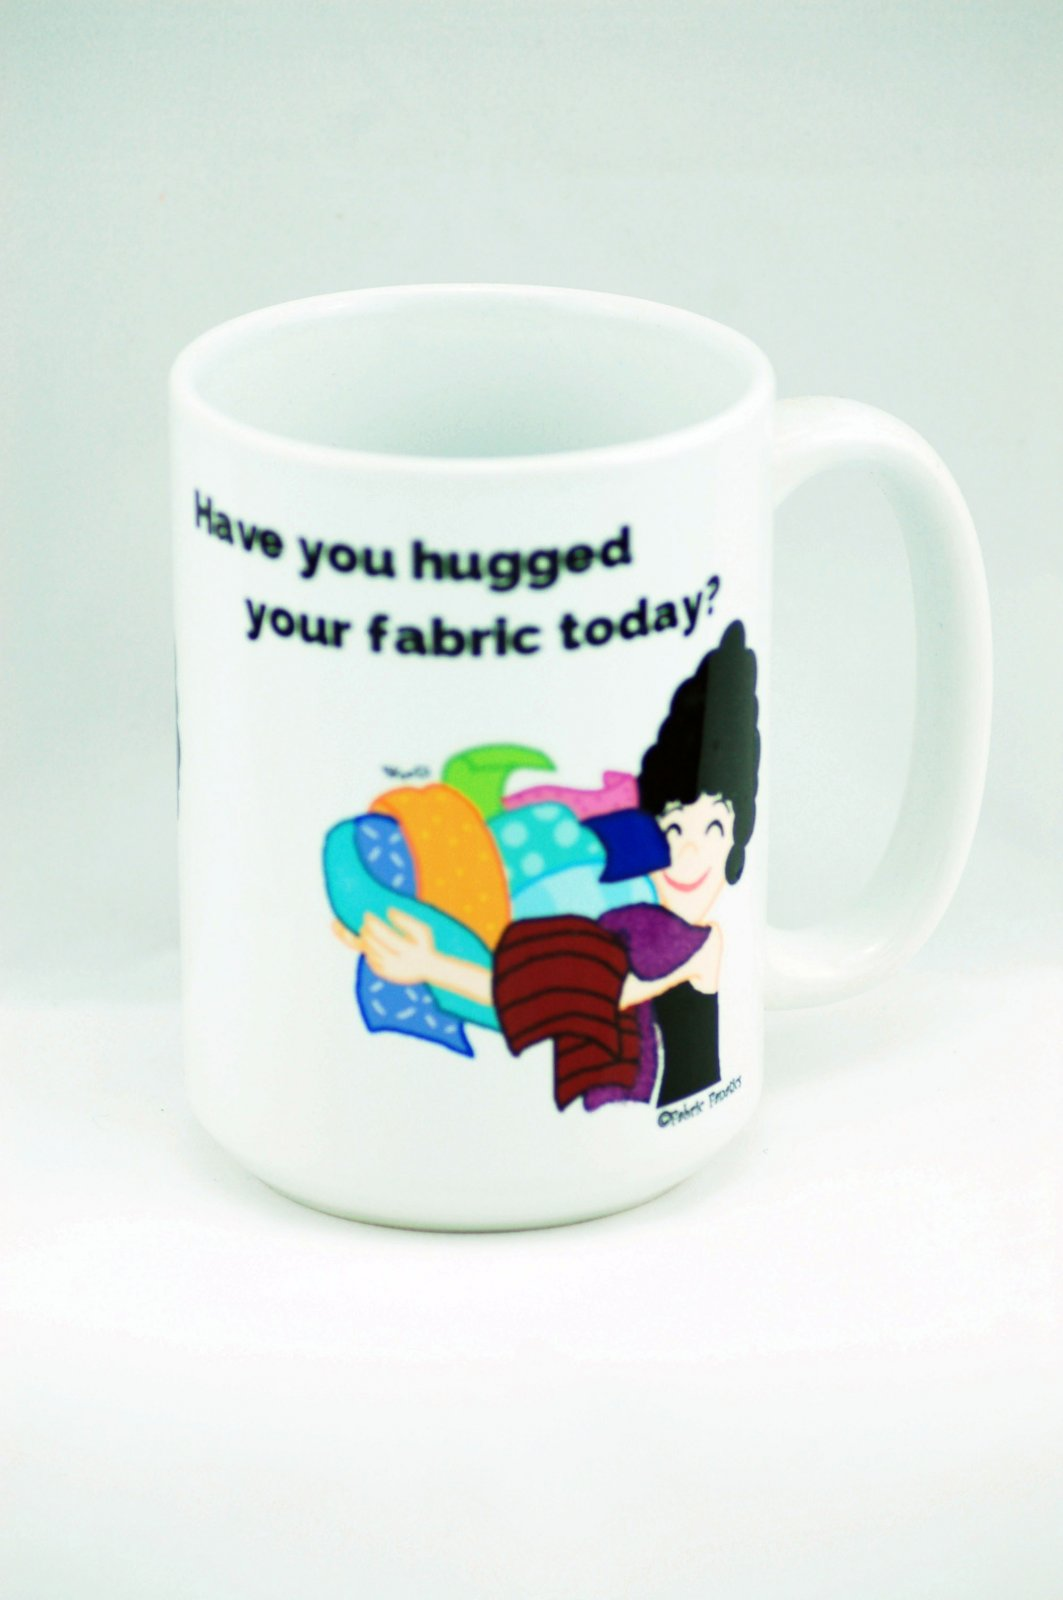 Mug-Have You Hugged Your Fabric Today?